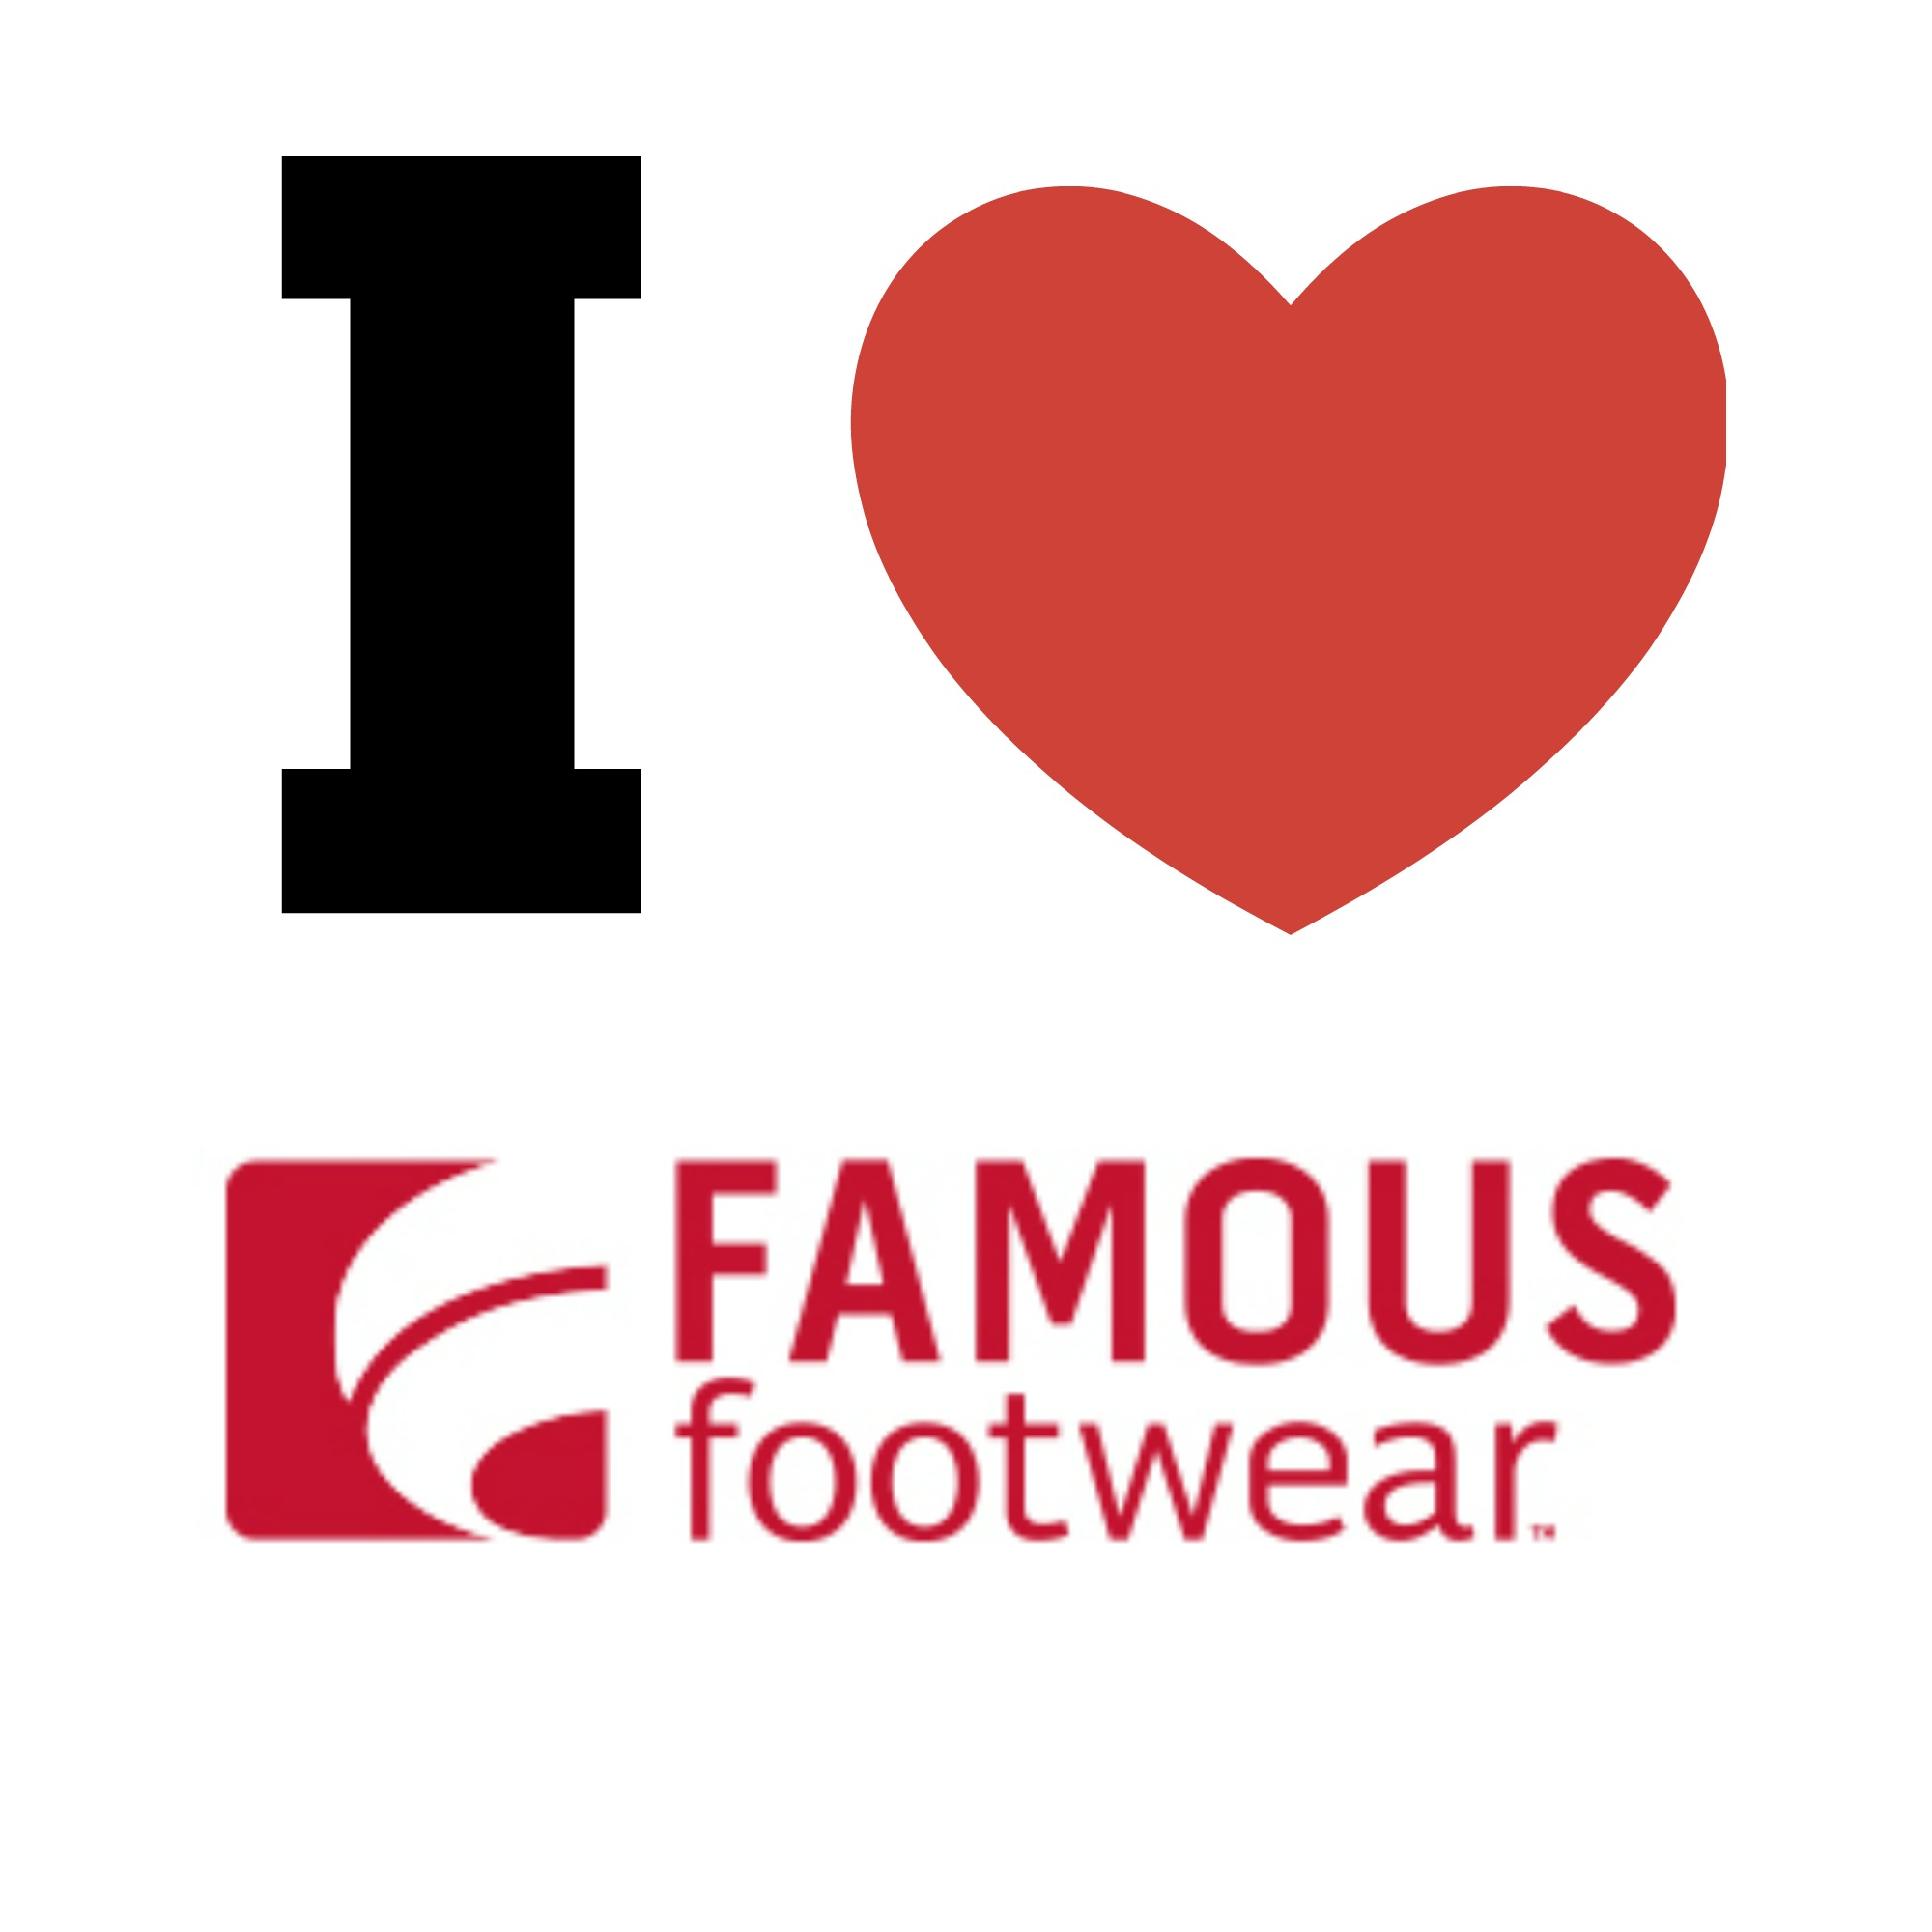 Why I Love Famous Footwear